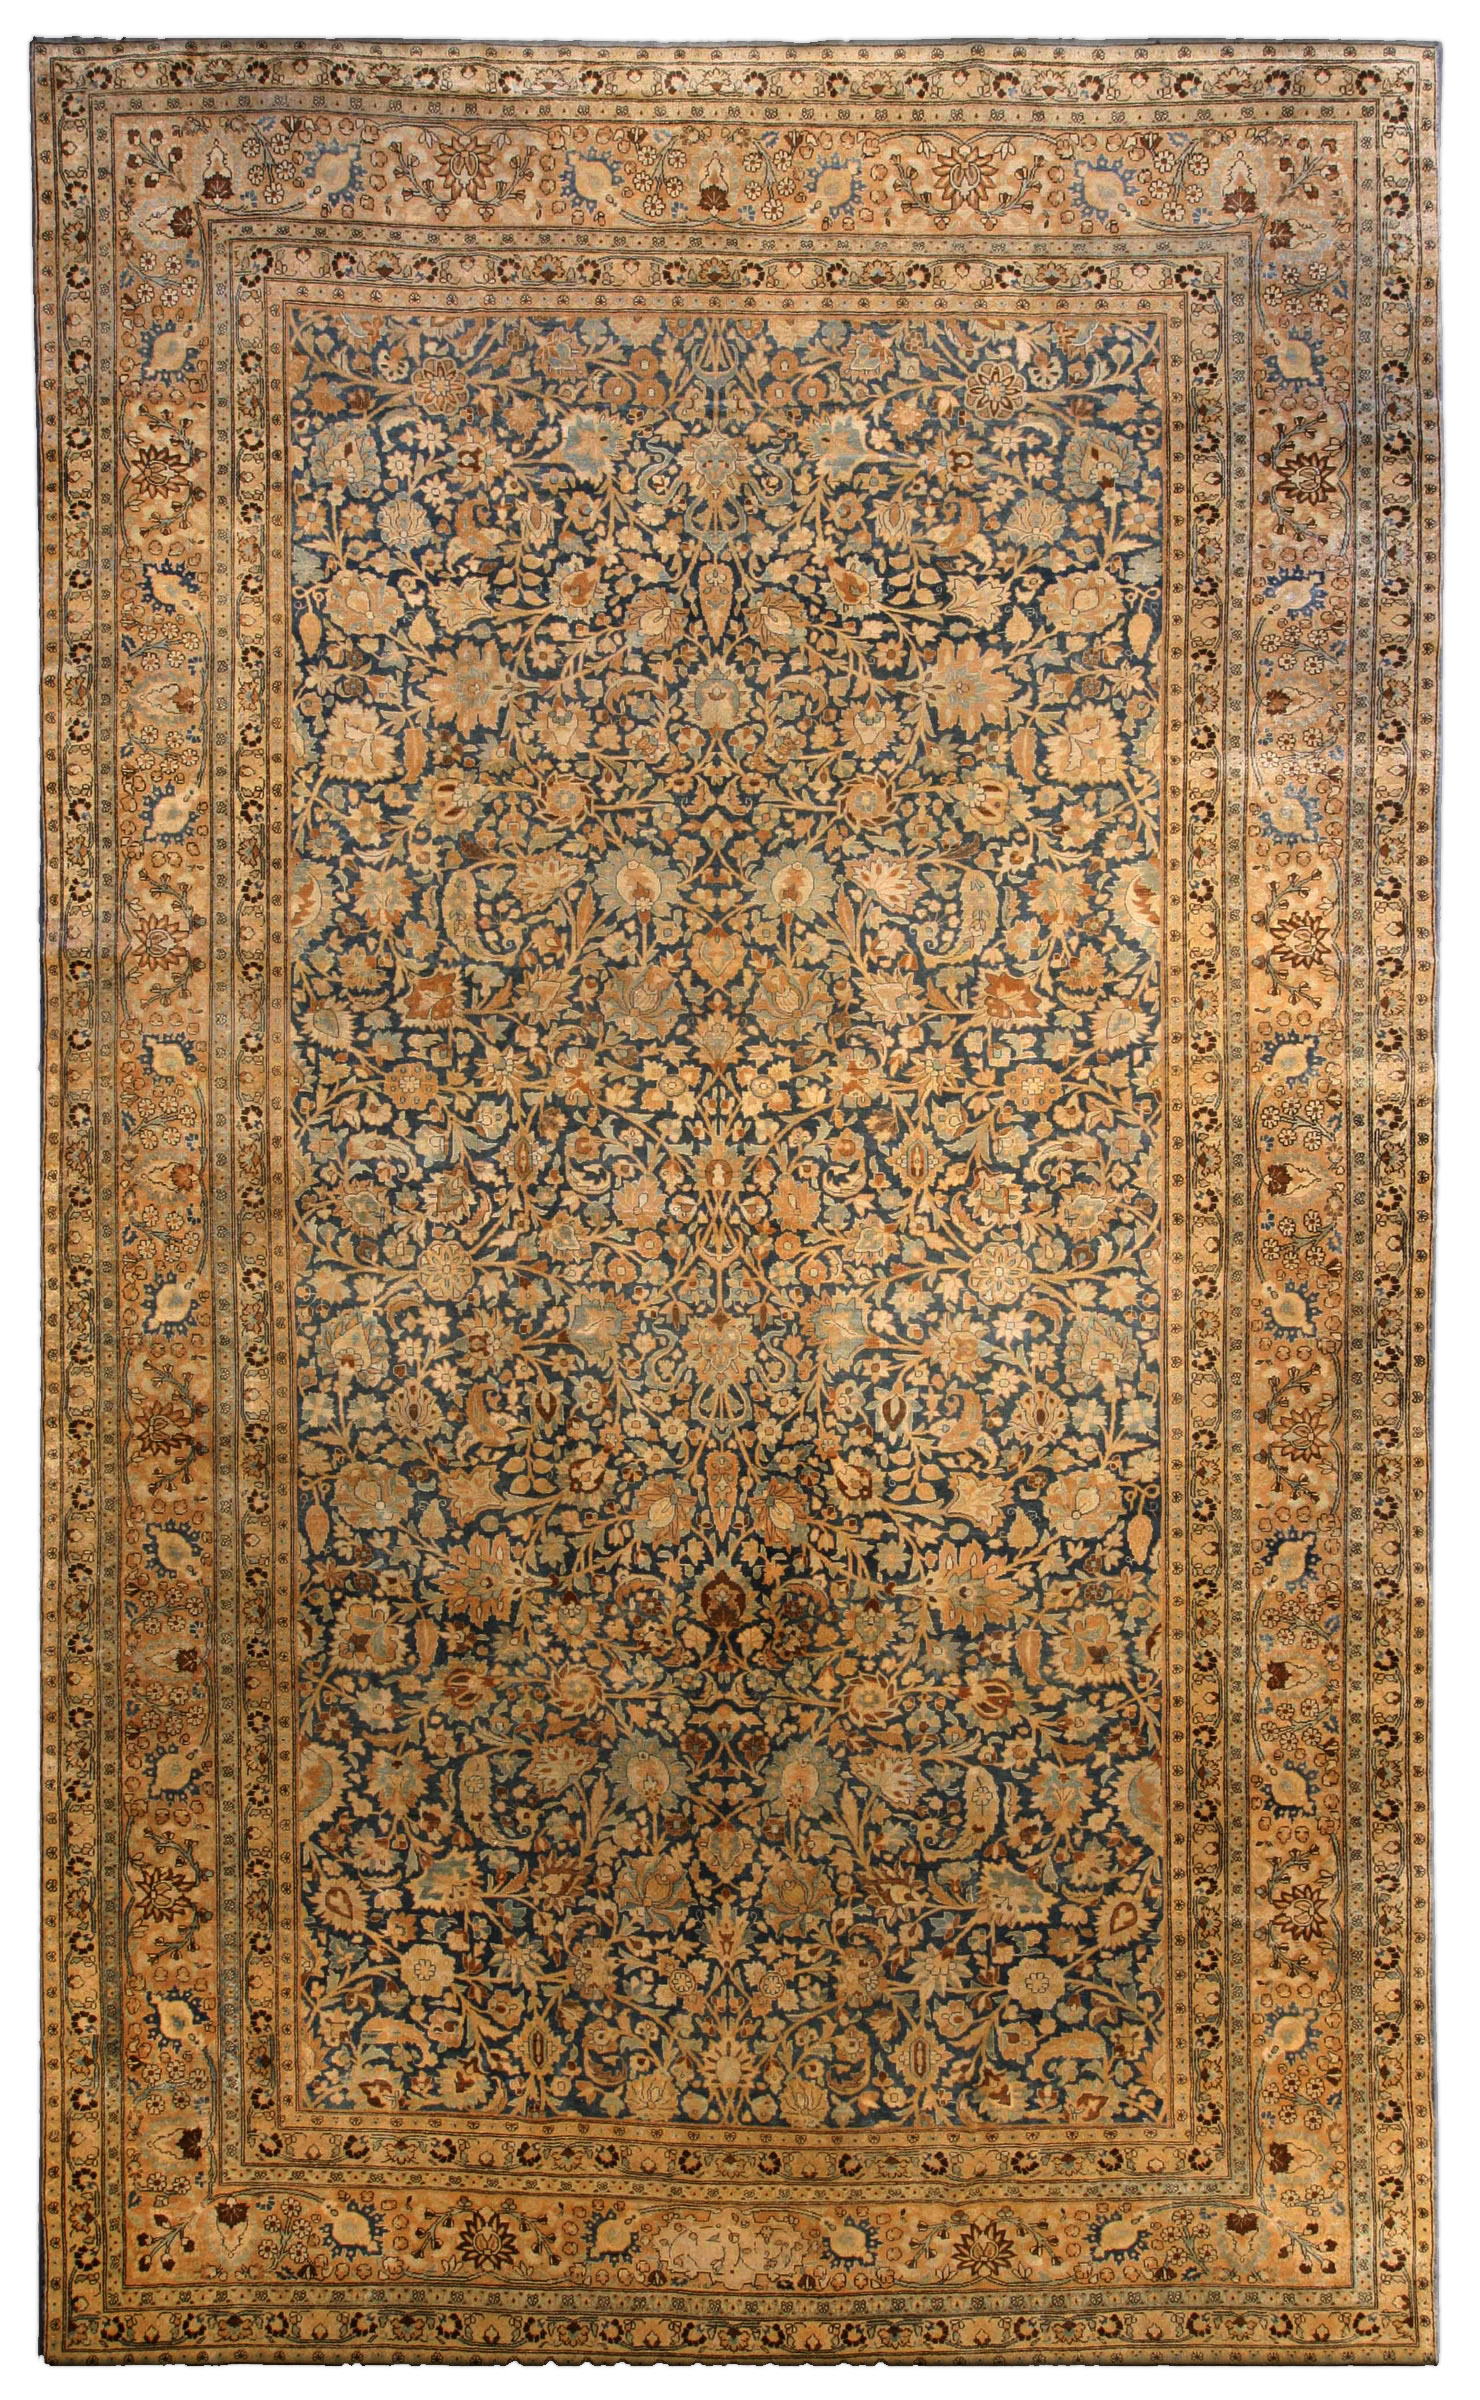 Antique Persian Tabriz Carpet Bb4048 By Dlb